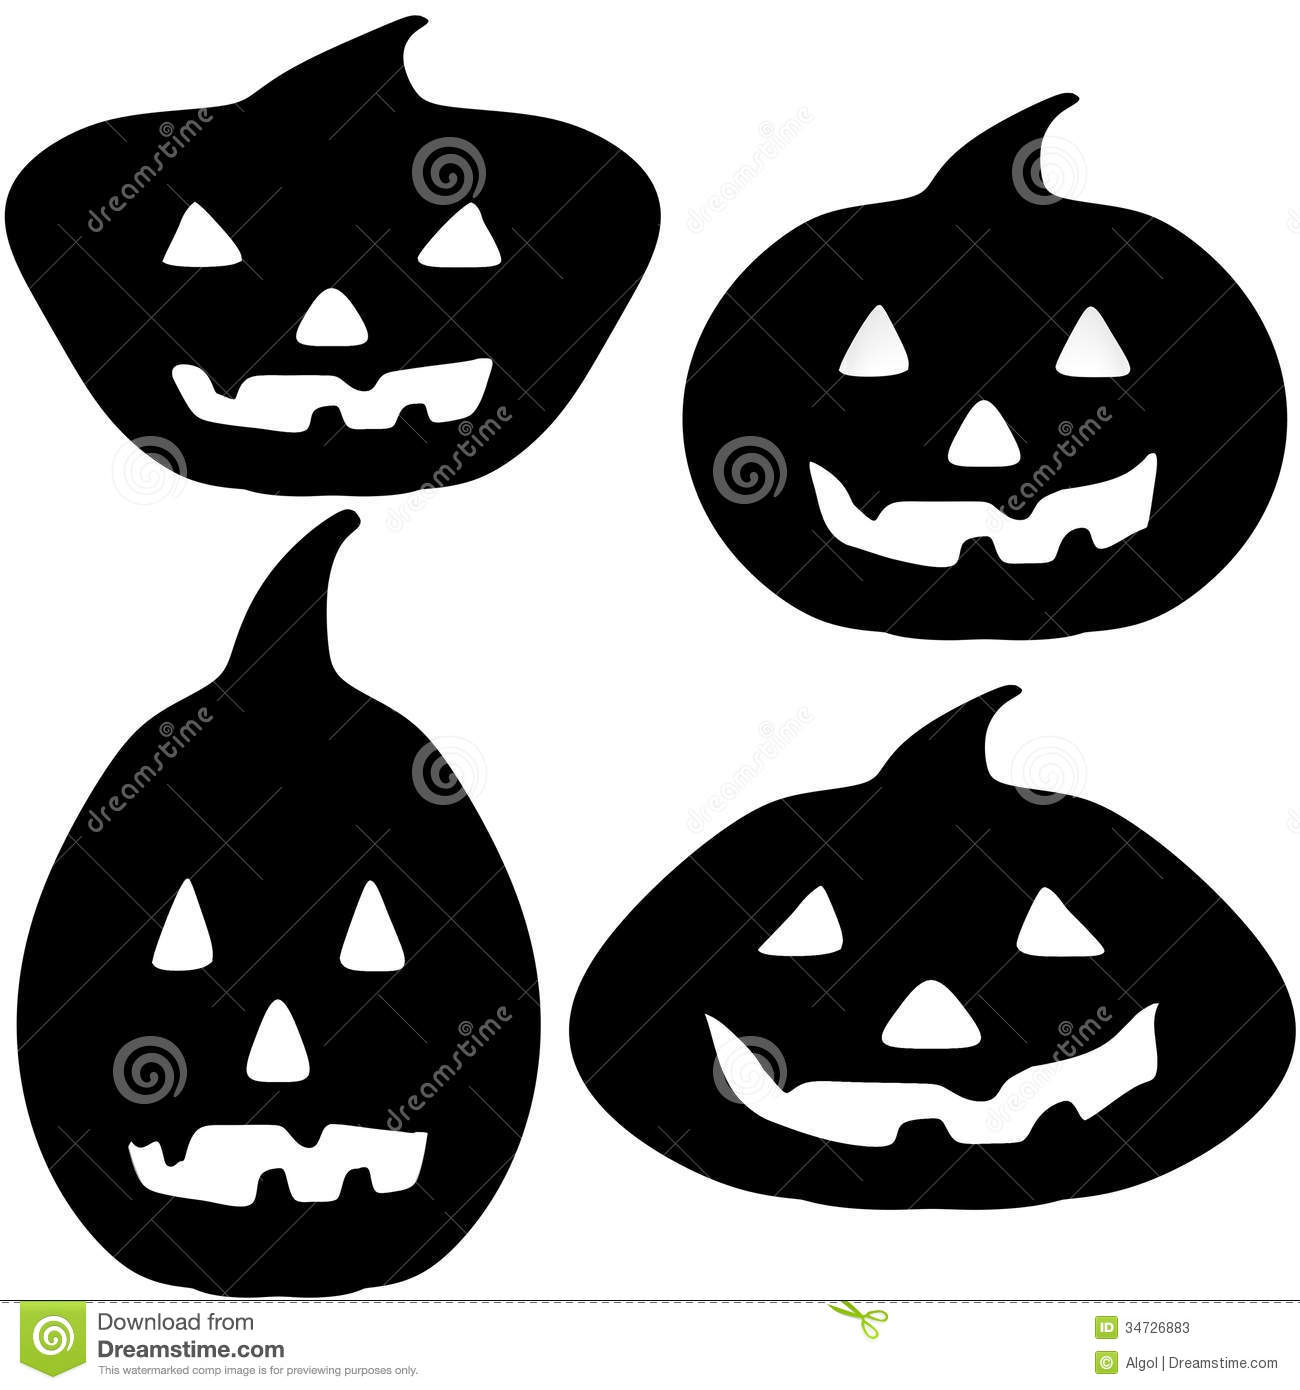 Halloween pumpkin silhouette illustrations stock photos for Pumpkin carving silhouettes